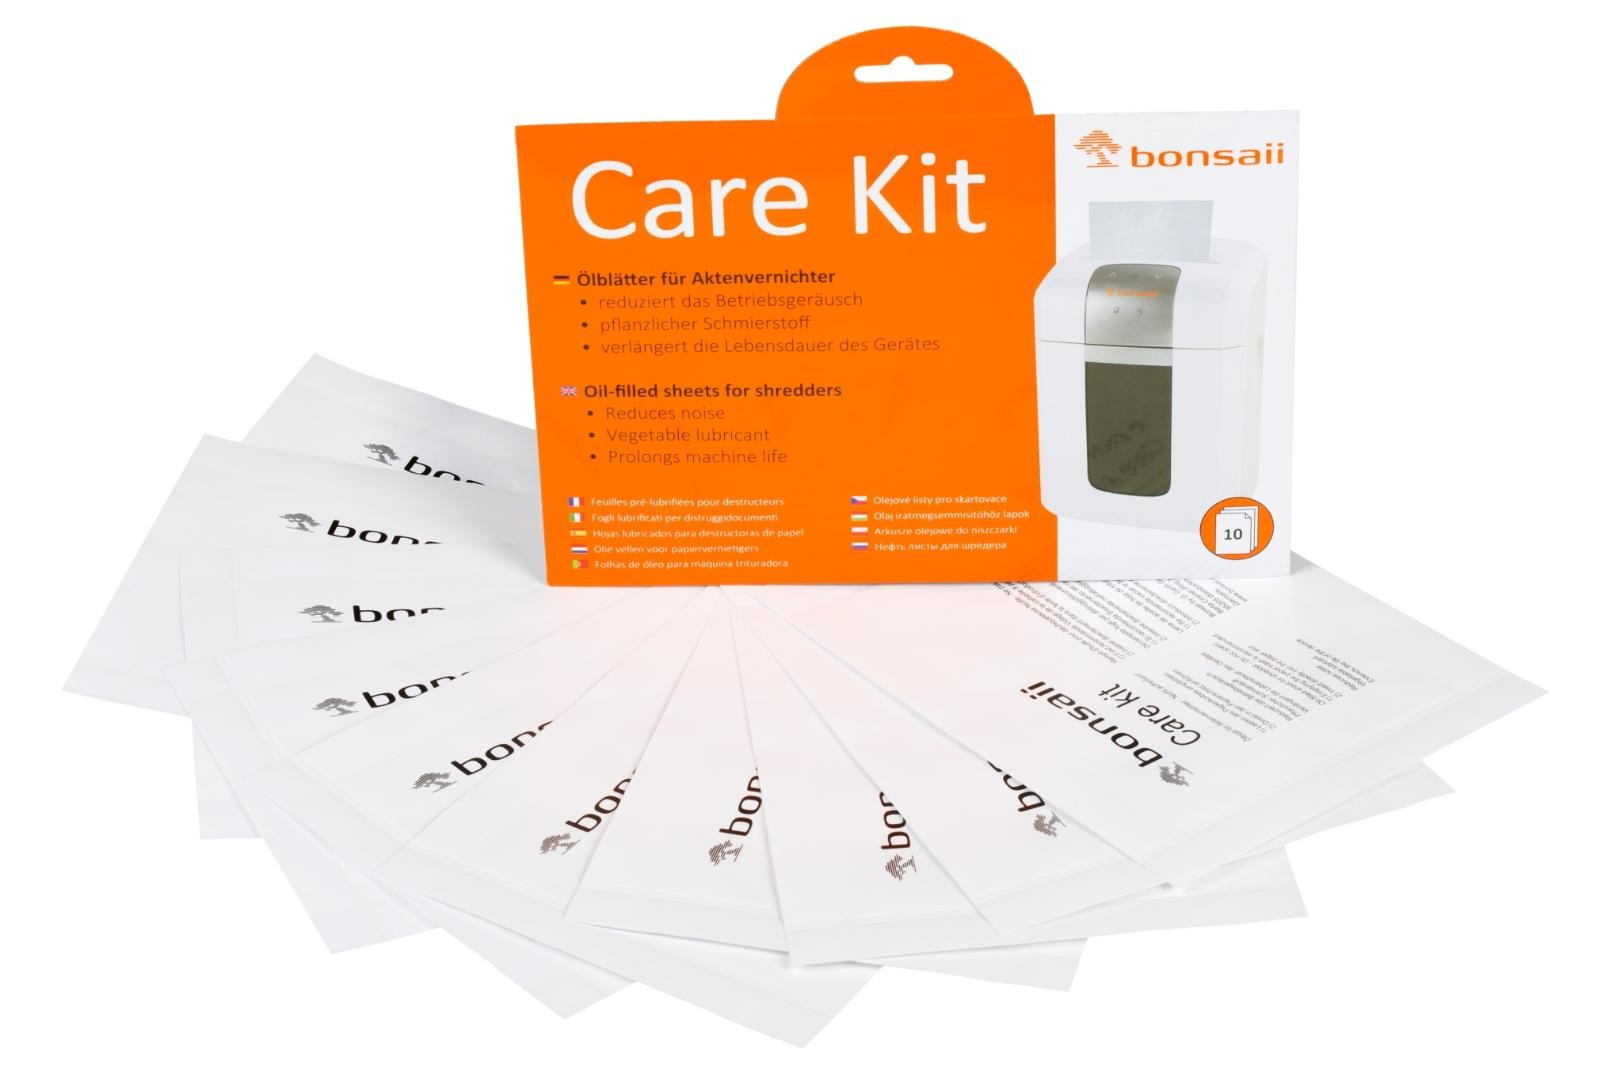 Bonsaii Care kit